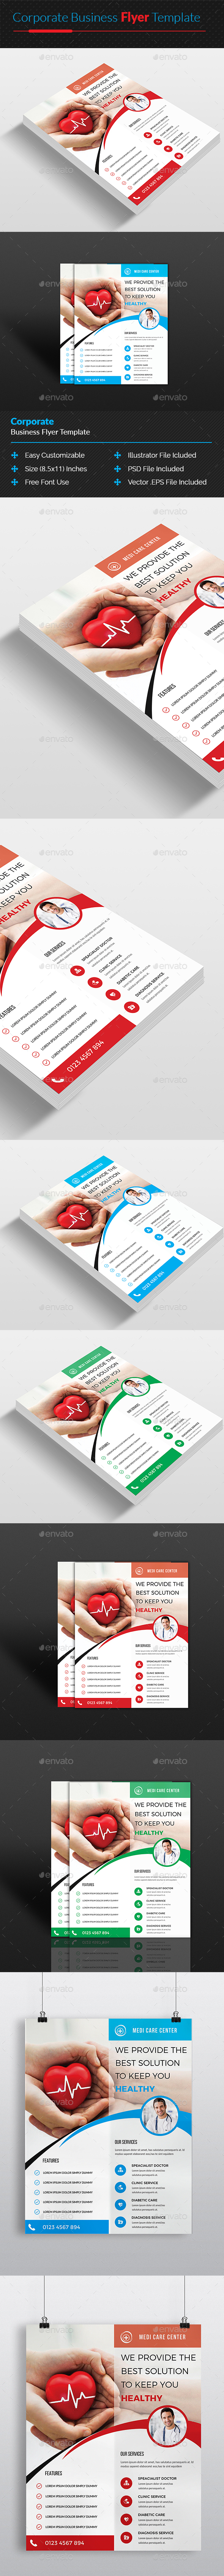 Medical & Doctors Flyer Template - Corporate Flyers